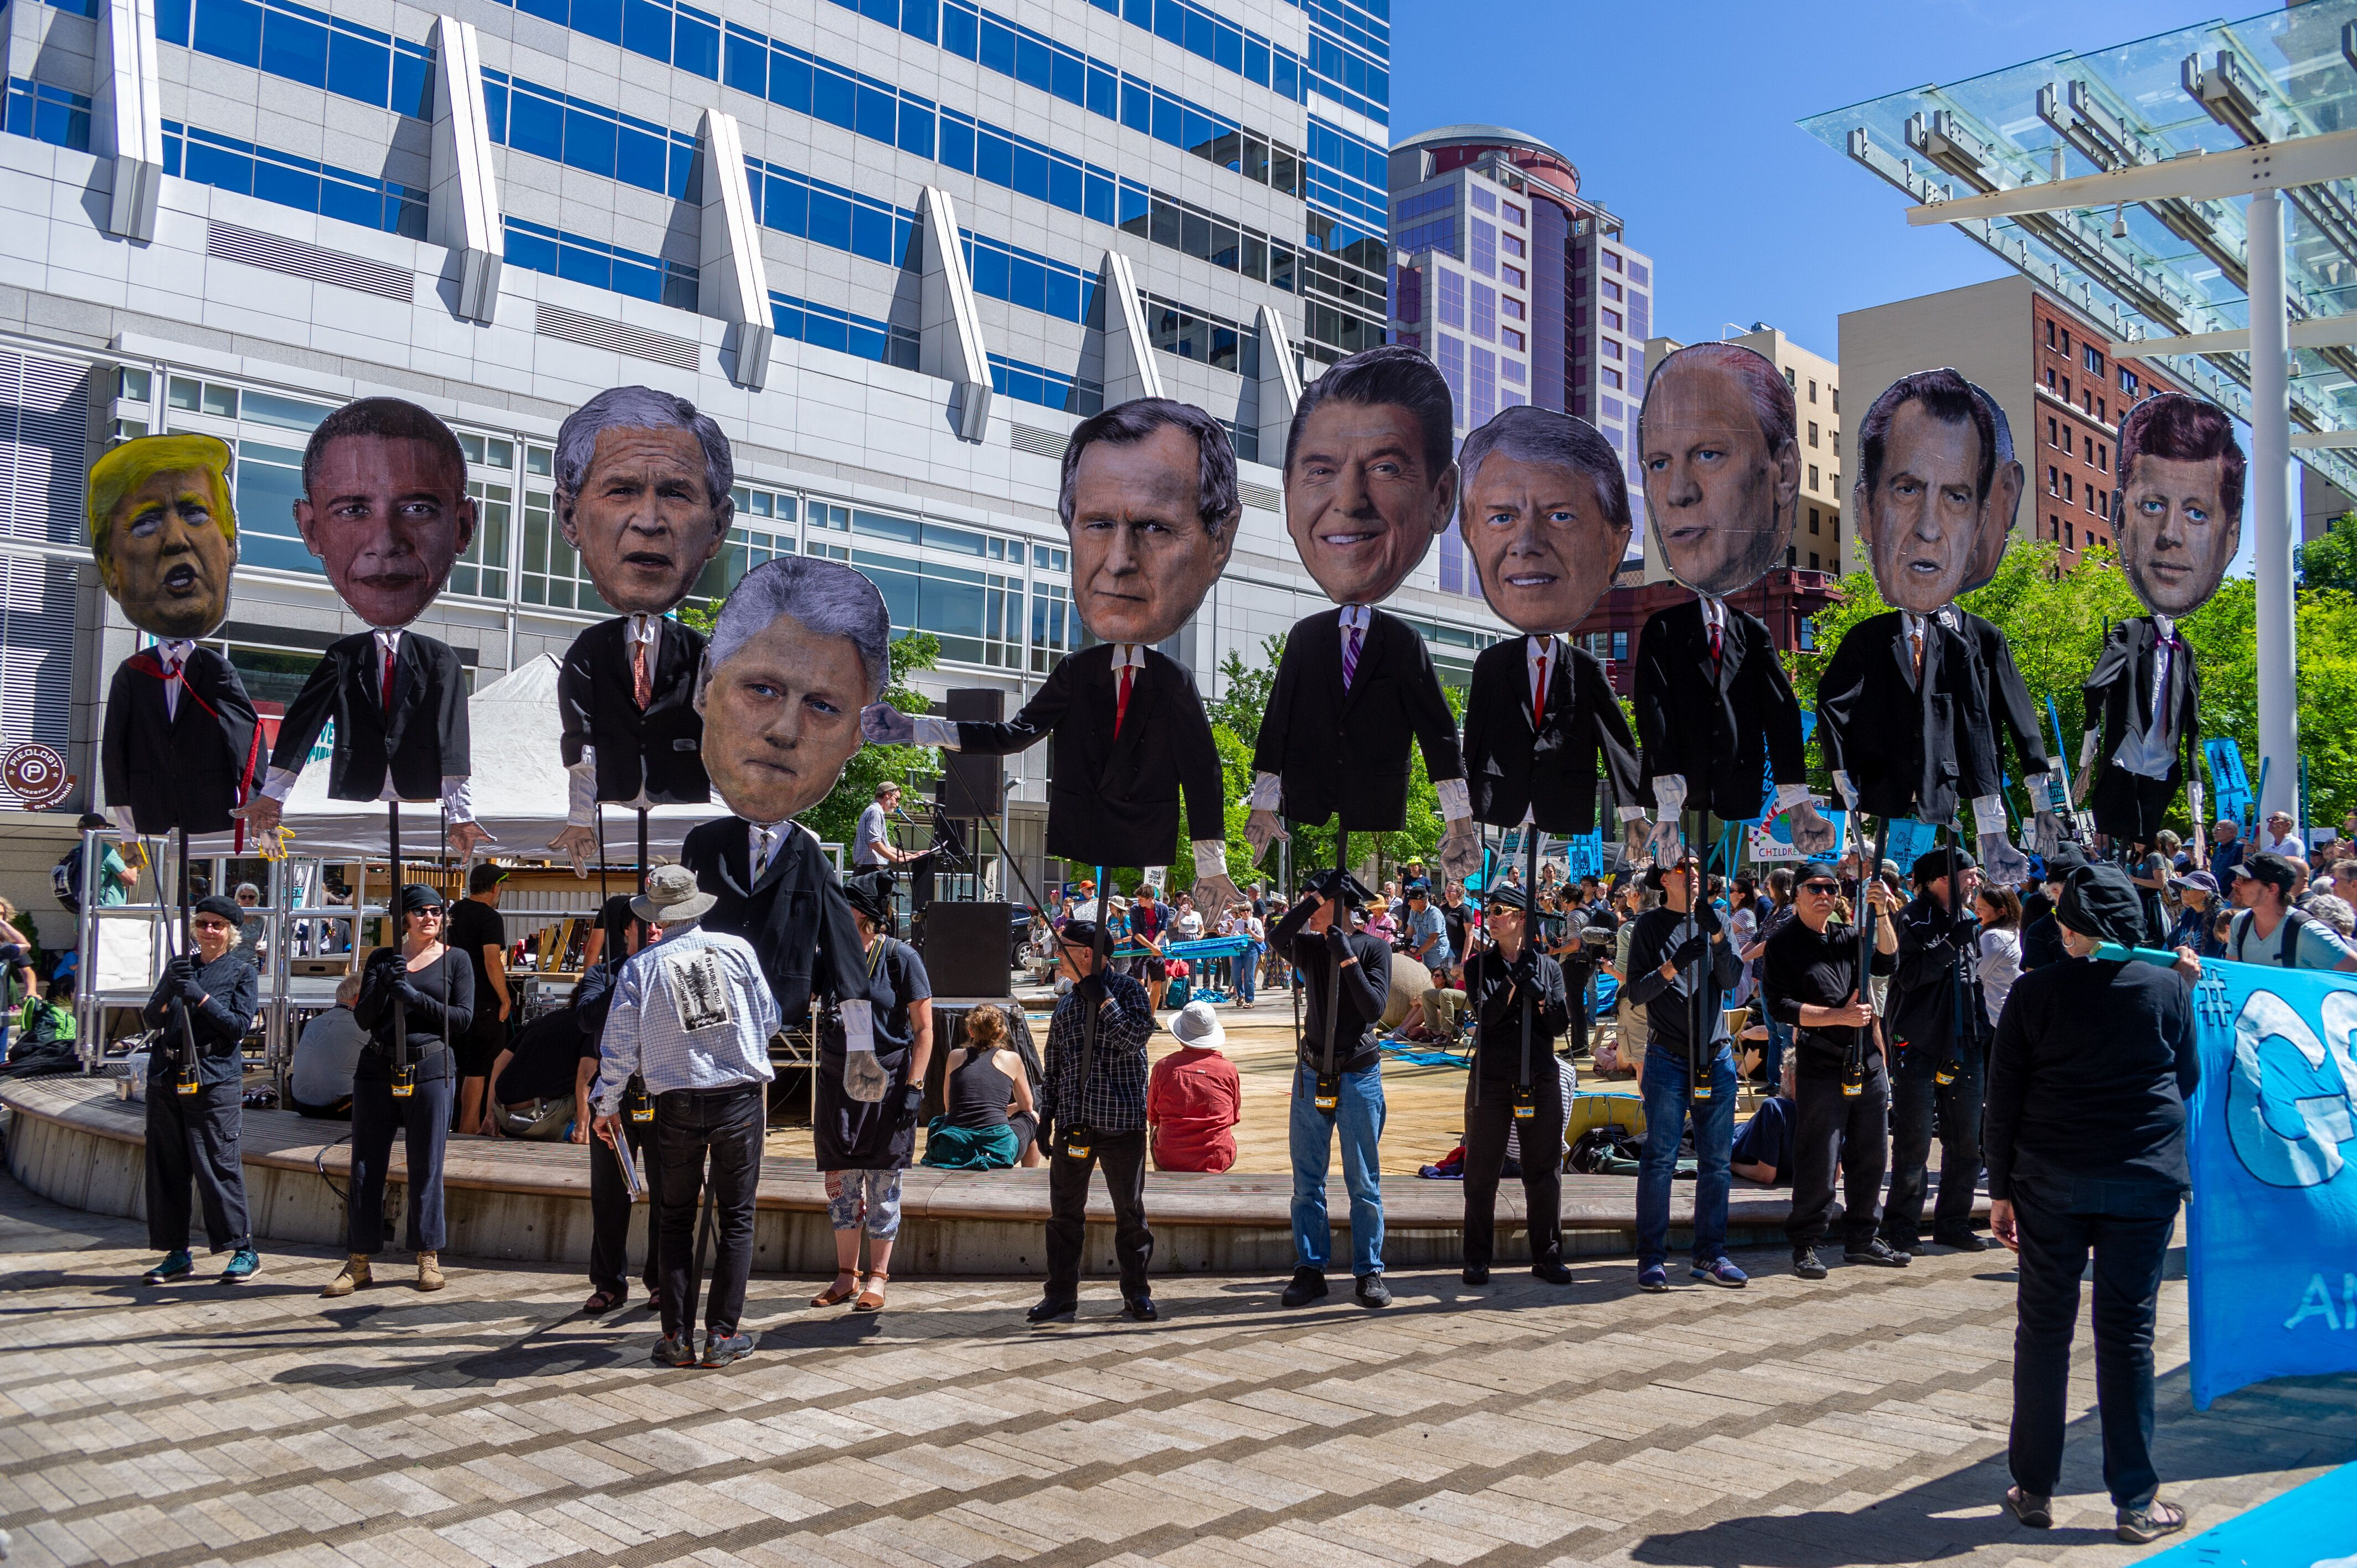 Past U.S. presidents are held up at a rally in Portland in support of a Supreme Court case in which young people are suing th